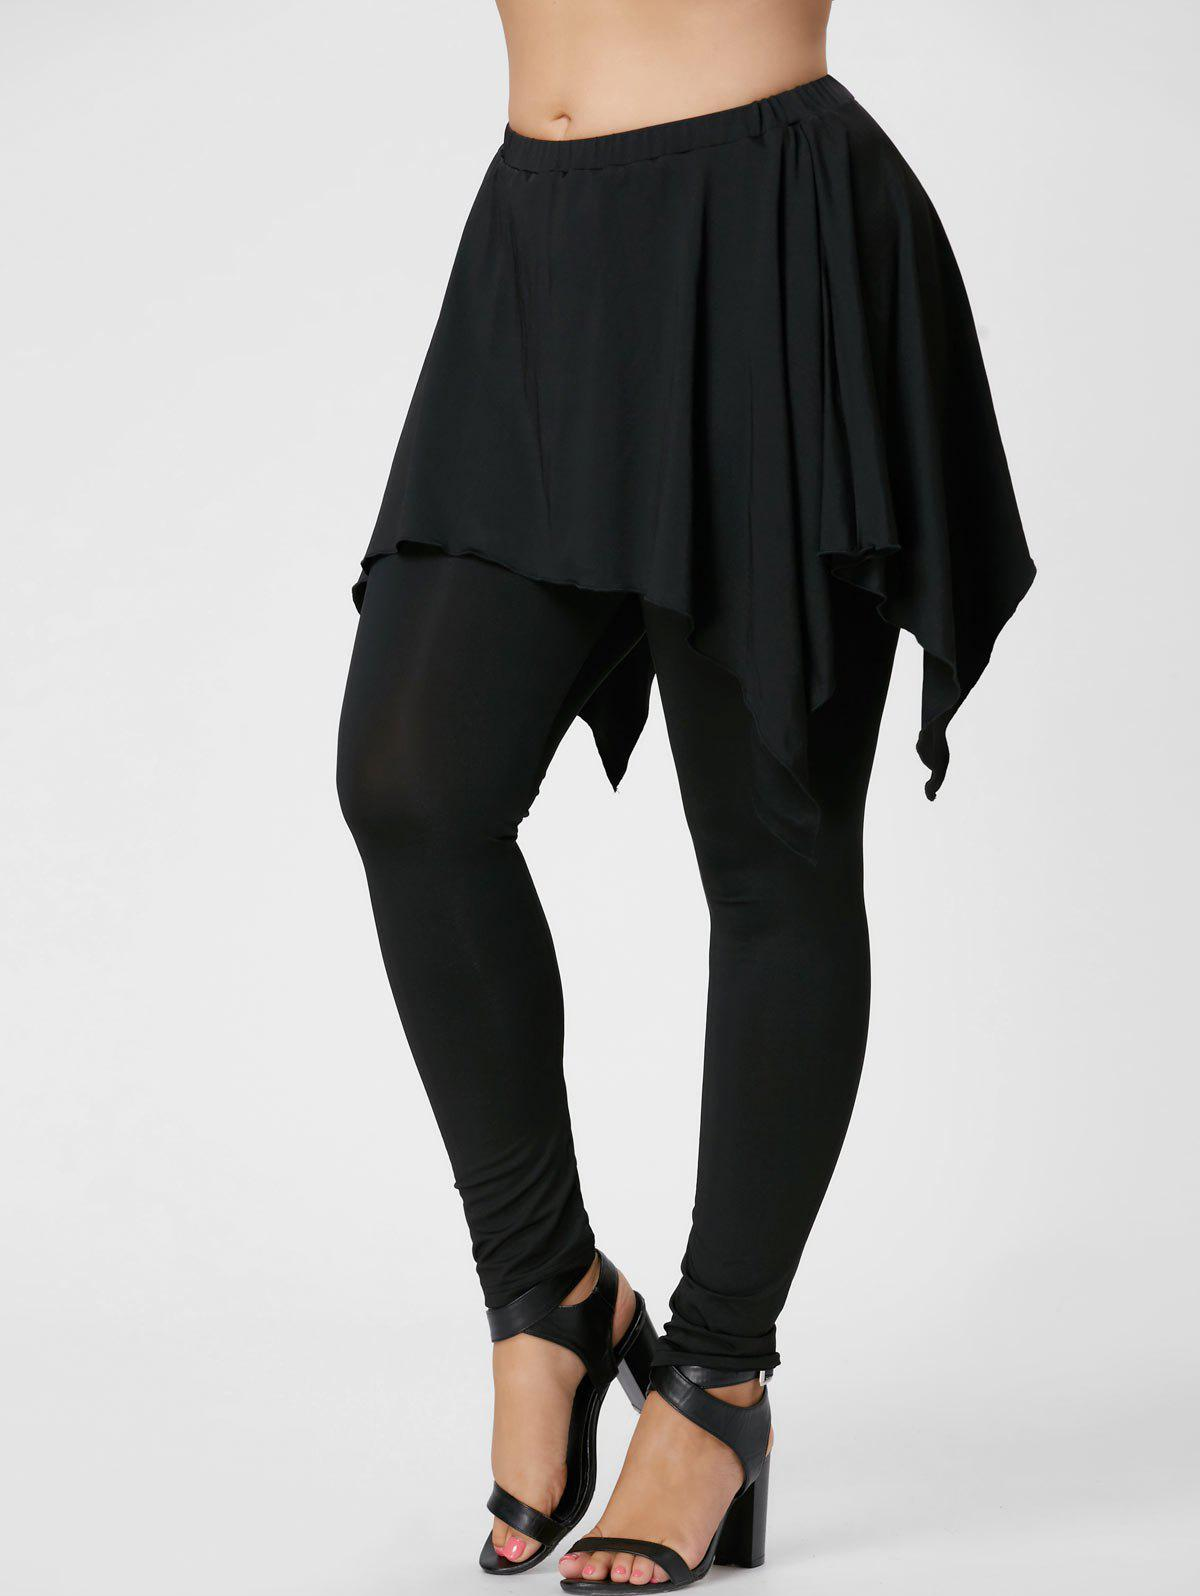 Plus Size Handerchief Skirted Pants - BLACK XL